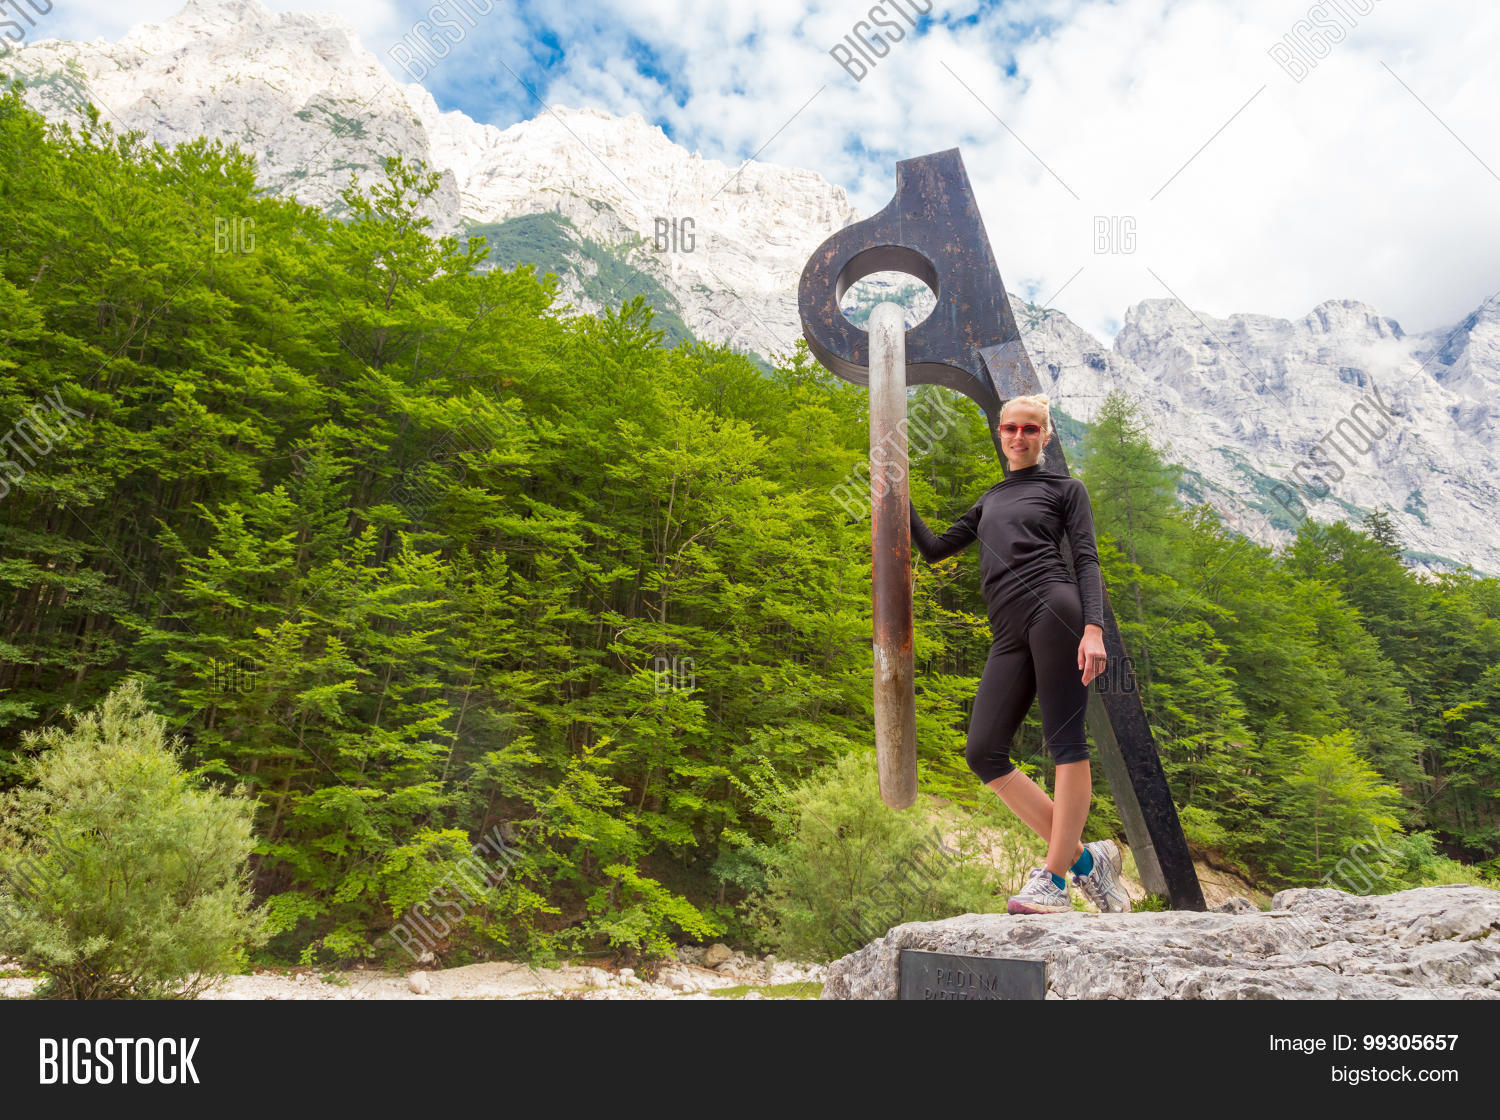 achievement,active,alpinists,alps,attractive,beautiful,beauty,carefree,cliff,exercise,face,female,freedom,girl,green,happy,health,healthy,hike,hiking,joy,julian,leisure,lifestyle,monument,mountaineers,mountains,national,nature,outdoor,park,person,pleasure,point,relax,relaxation,rock,slovenia,spiritual,sport,sporty,starting,statue,success,treck,triglav,trip,valley,vitality,vrata,walk,wellbeing,woman,young